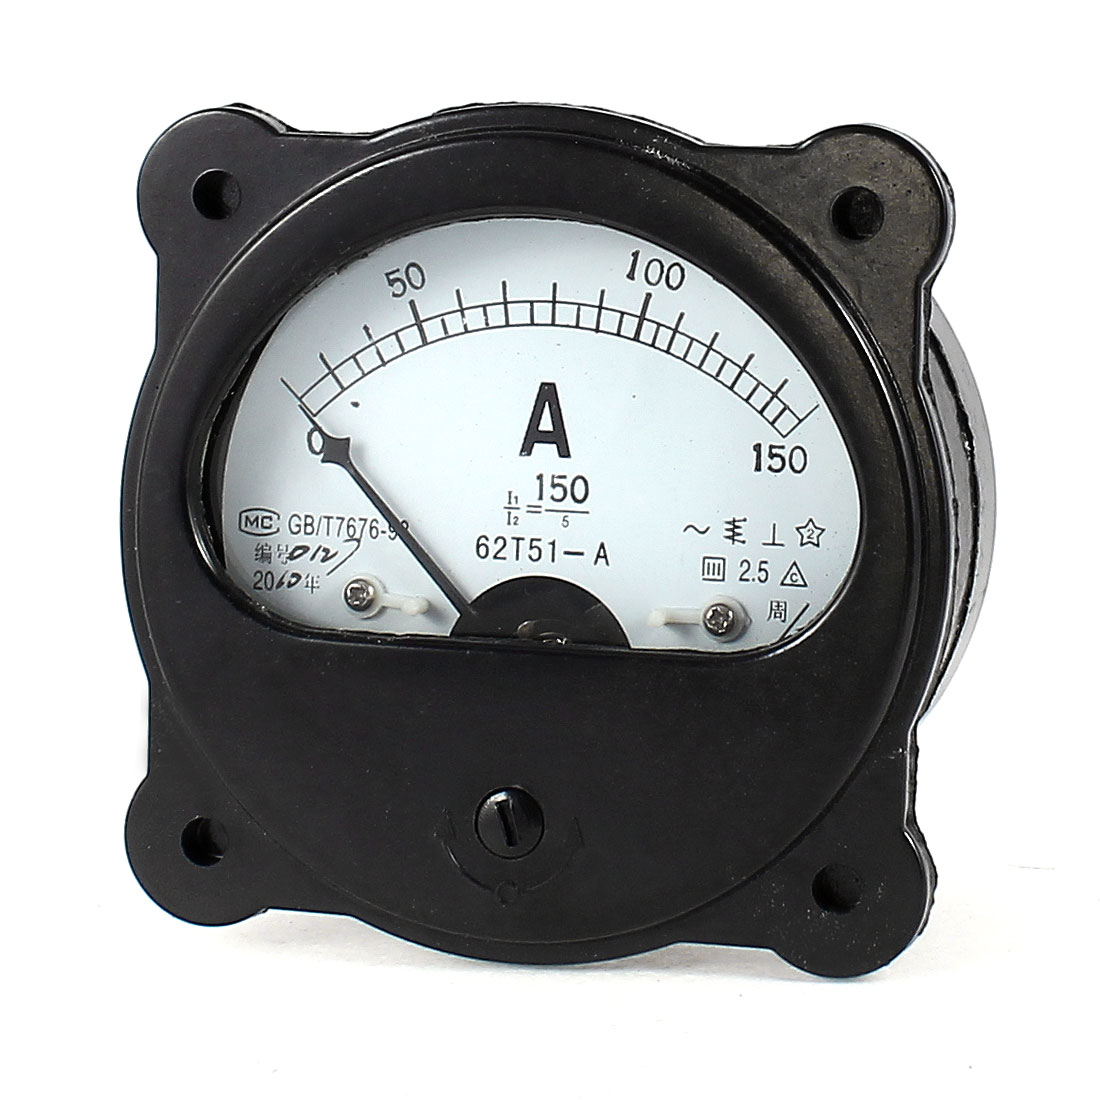 AC 0-150A Fine Tuning Dial Panel Analog Ampere Meter Amperemeter Black